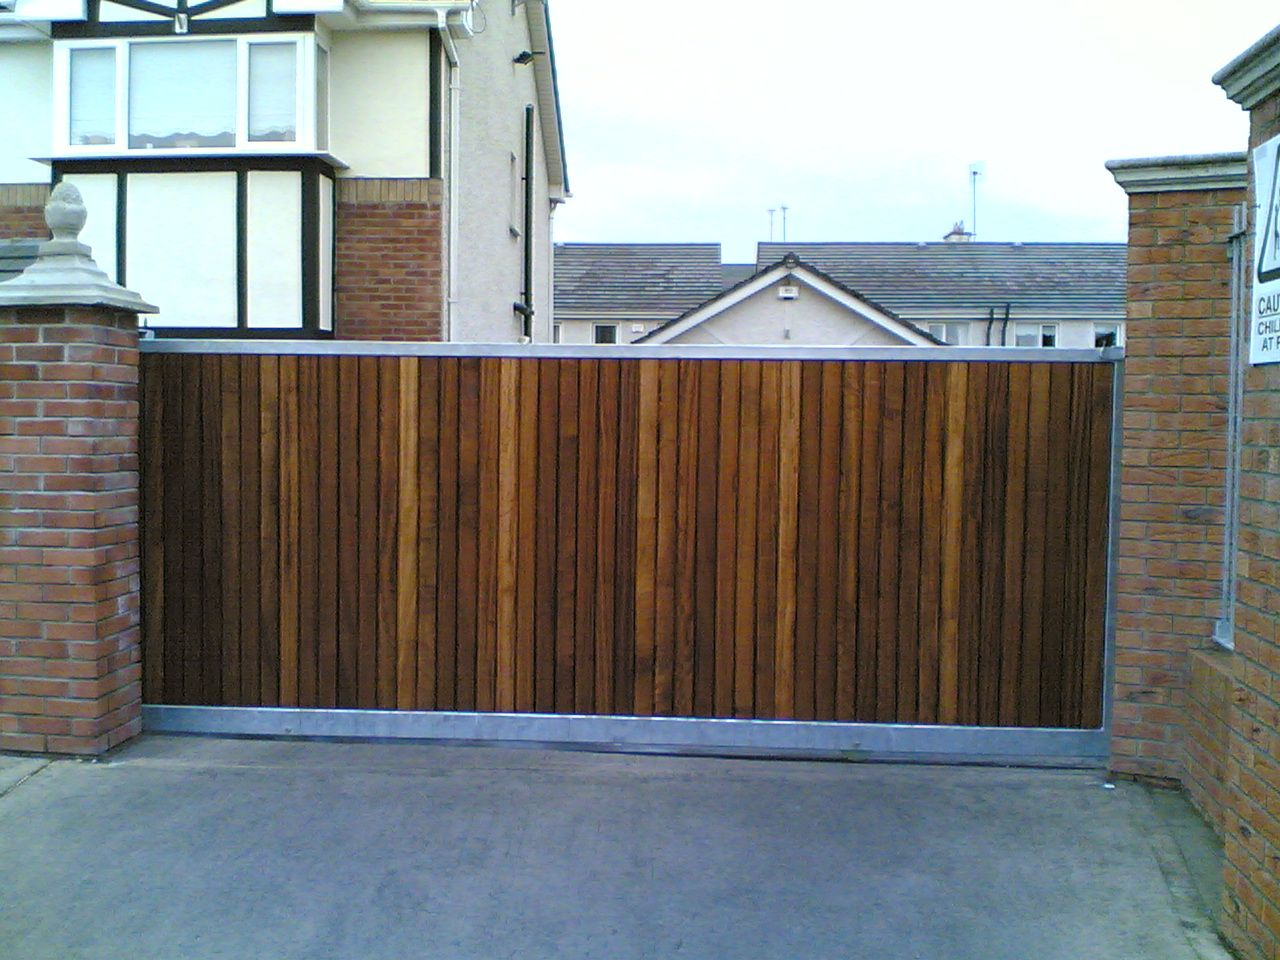 Irish Fencing and Railings- K02- Timber Domestic Gates 08 (5)